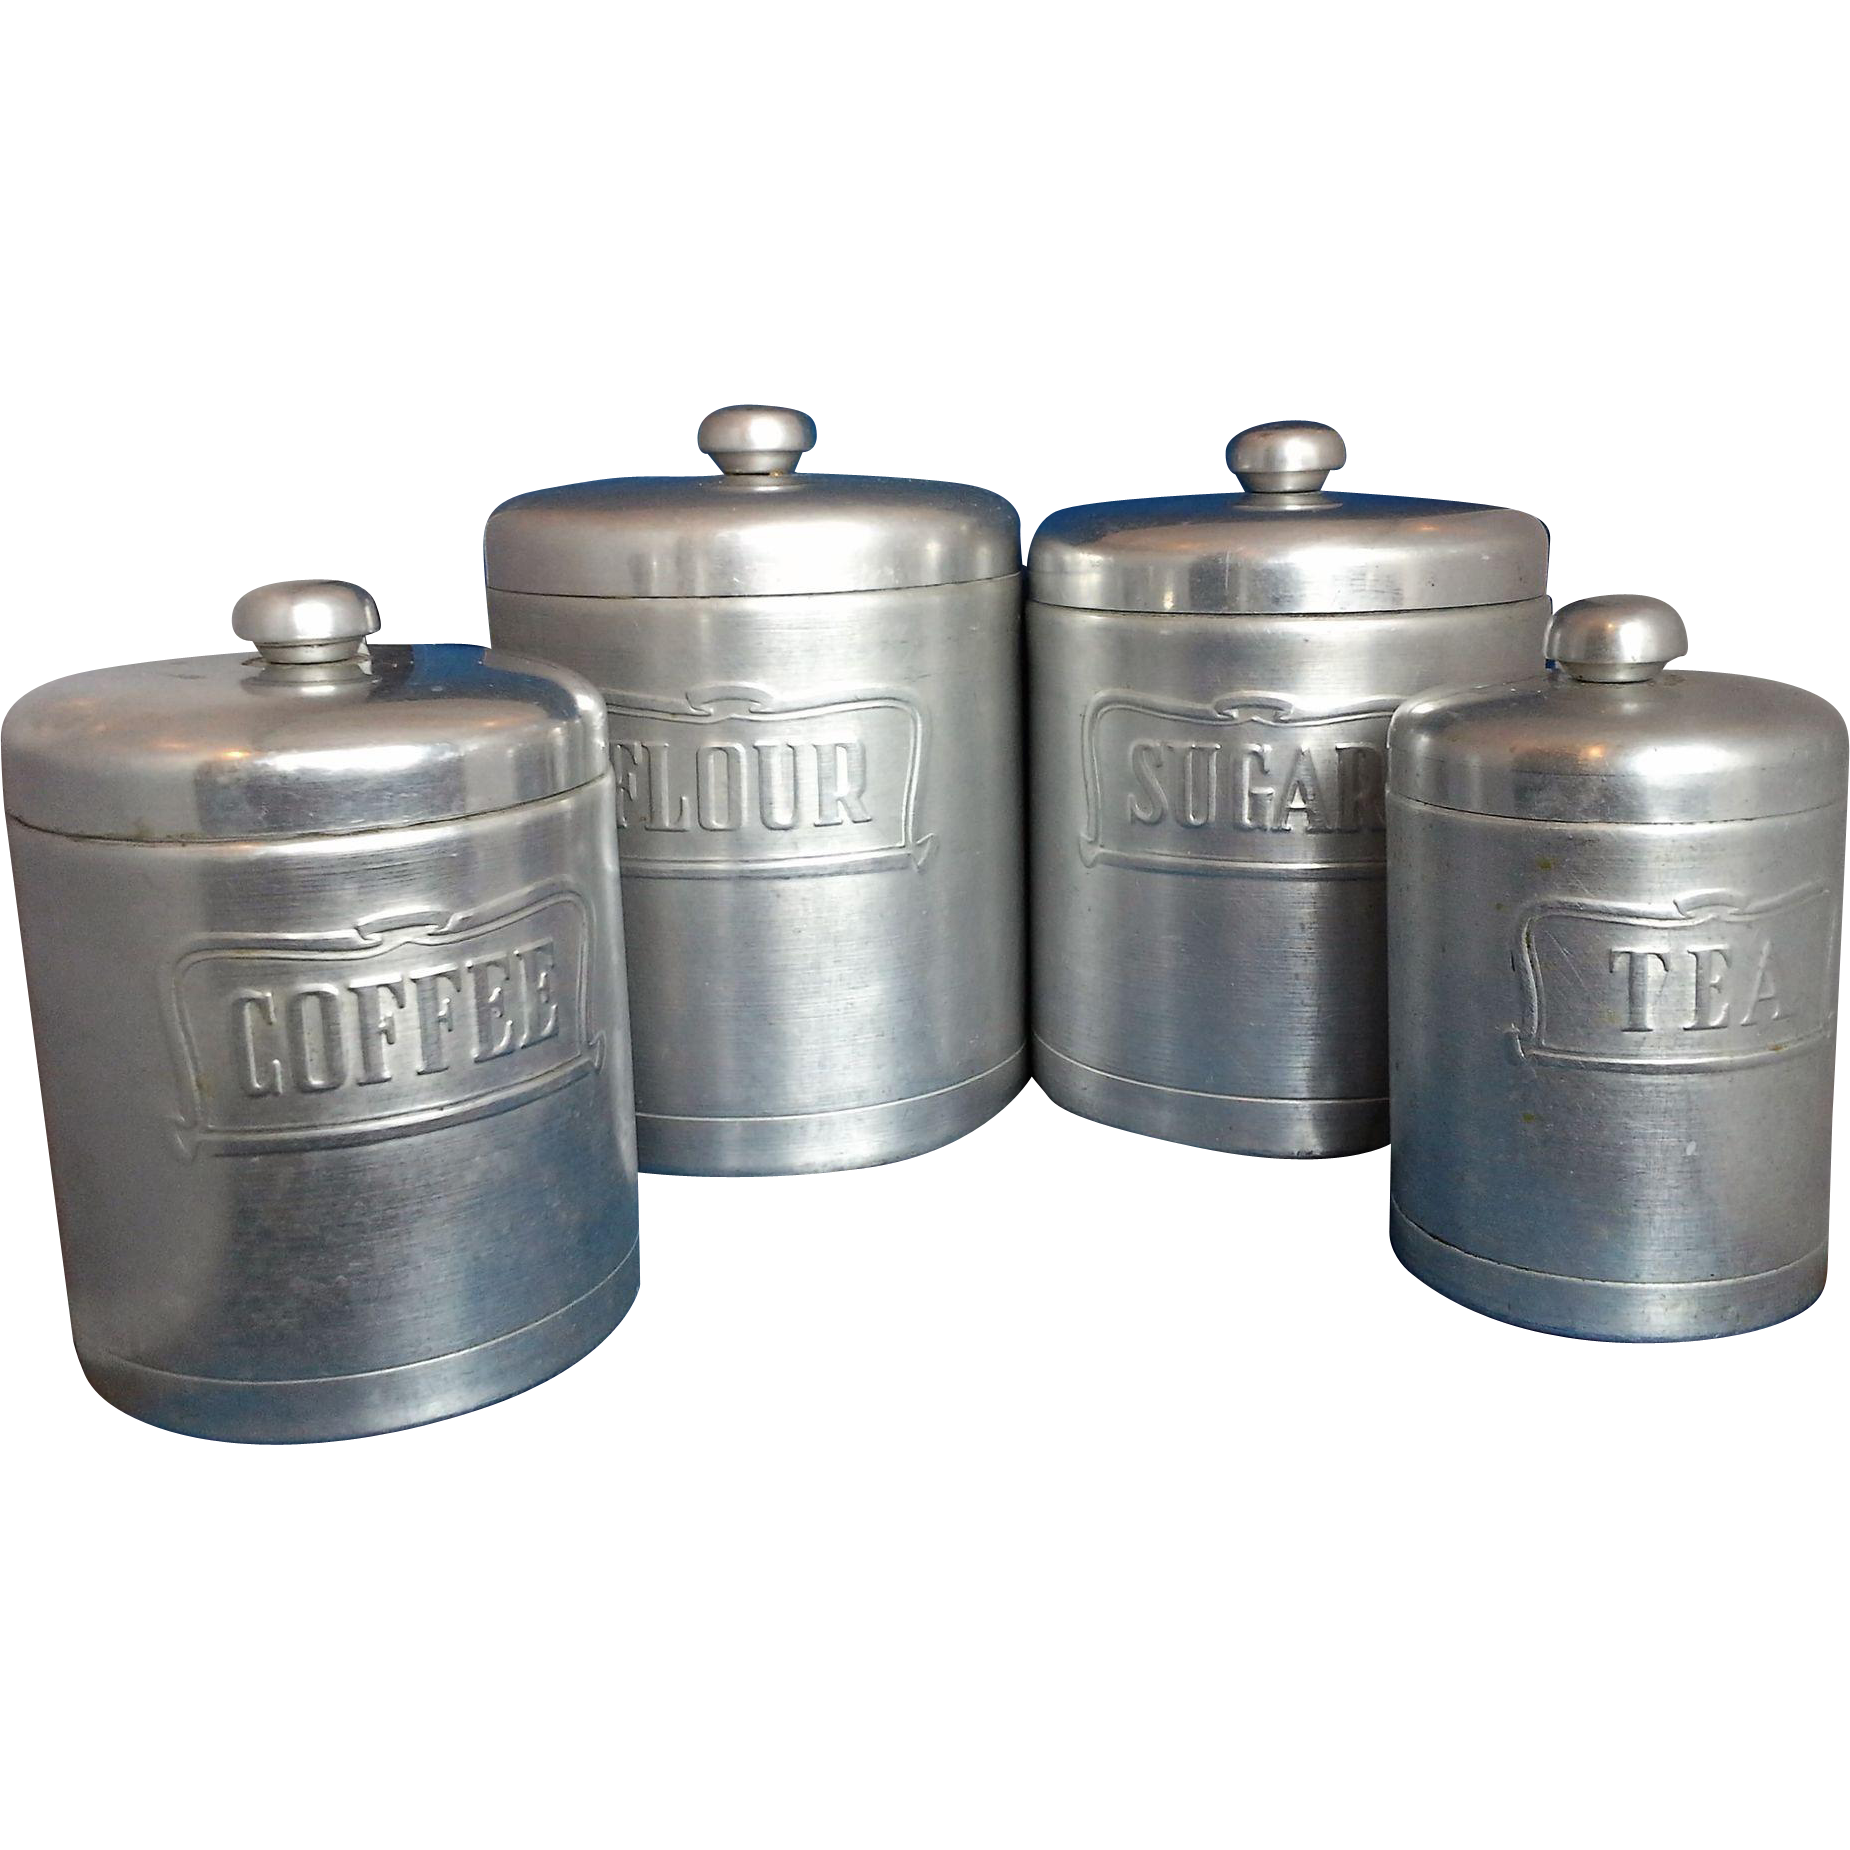 heller hostess ware spun aluminum kitchen canister set kitchen storage canisters homes and garden journal